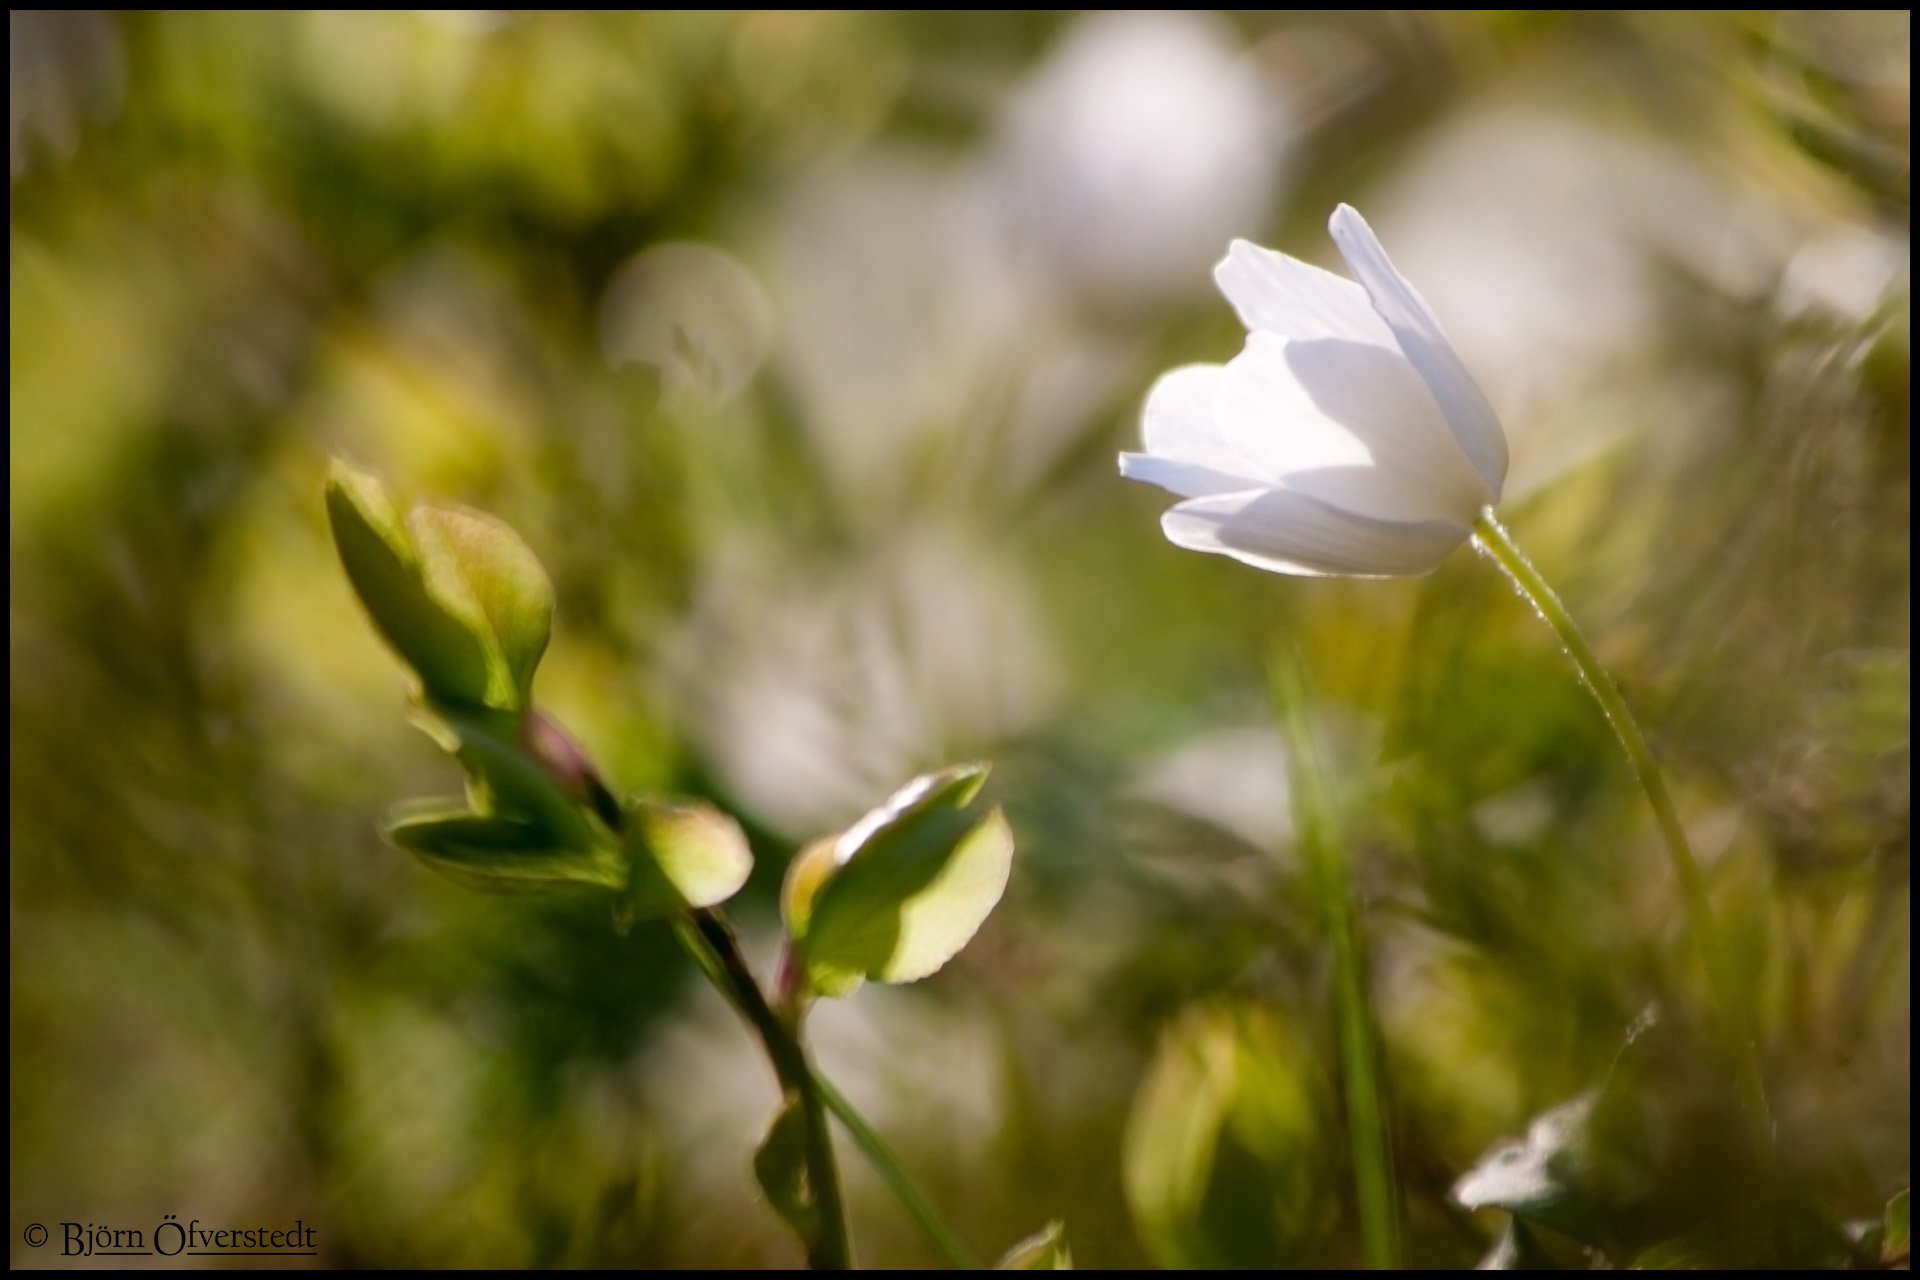 A wood anemone.